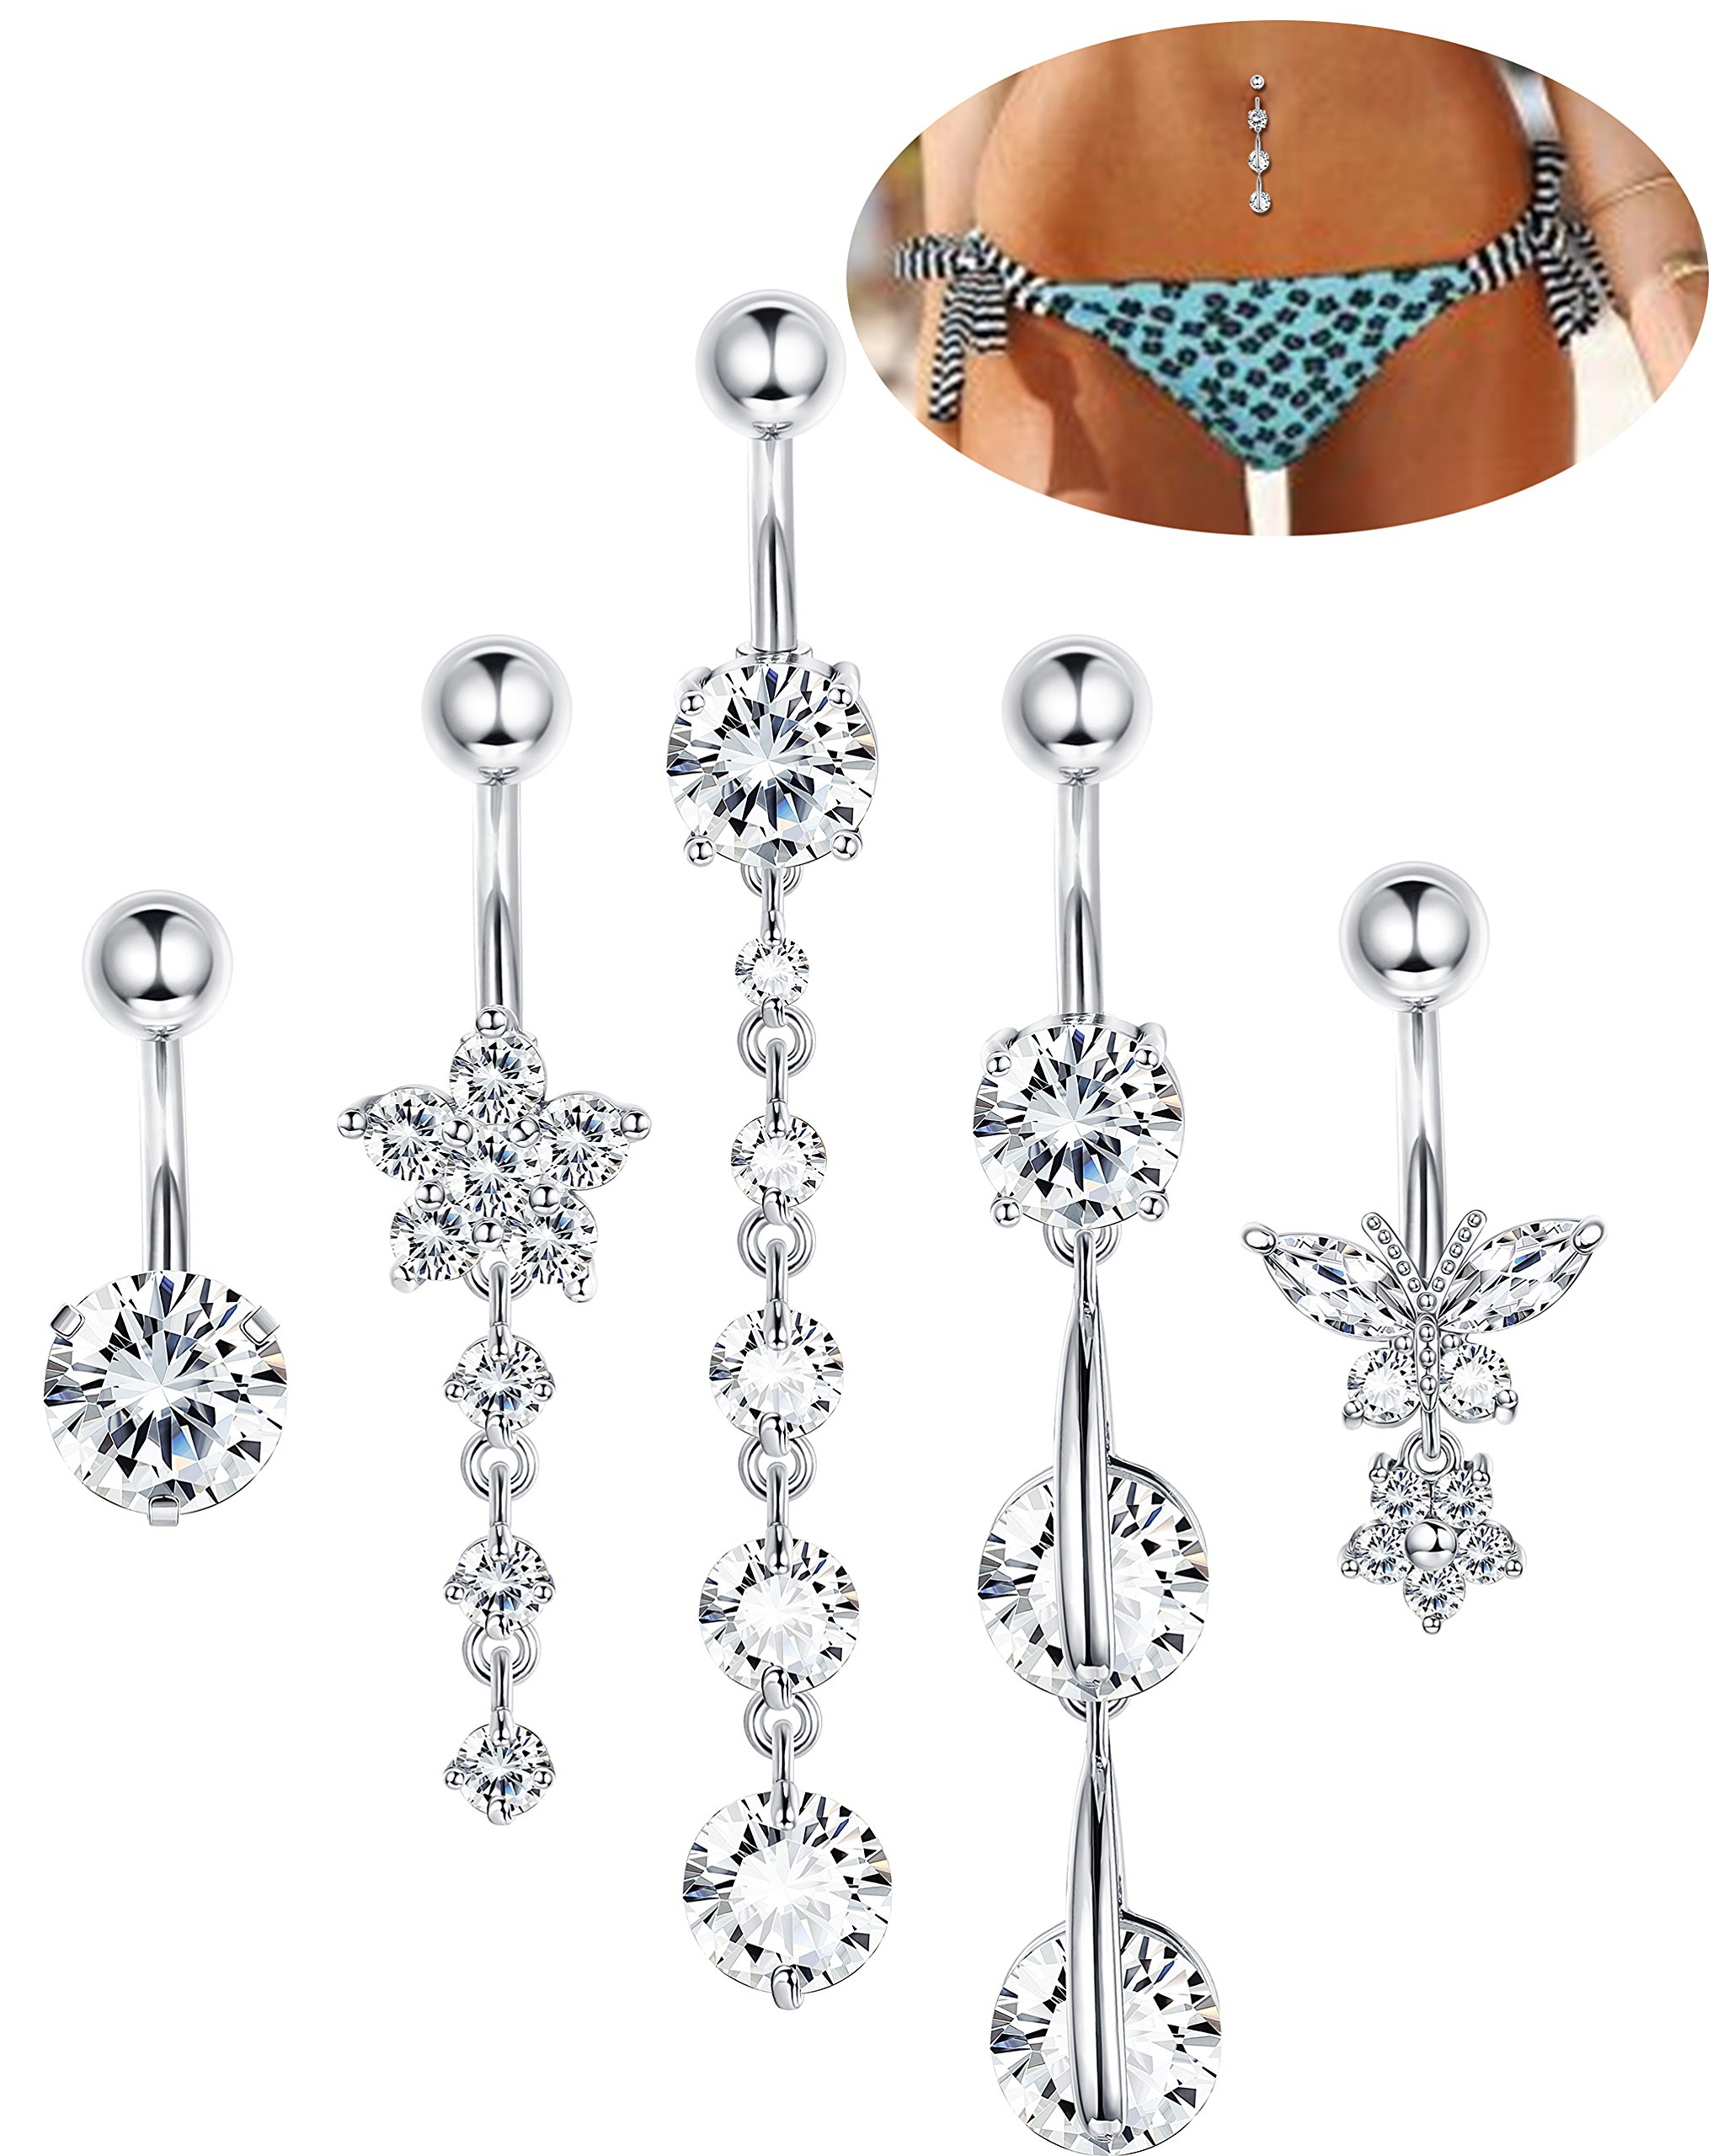 LOYALLOOK 5Pcs 14G Stainless Steel Screw Belly Button Rings for Women Girl Clear CZ Flower Butterfly Barbell Body Piercing Clear CZ